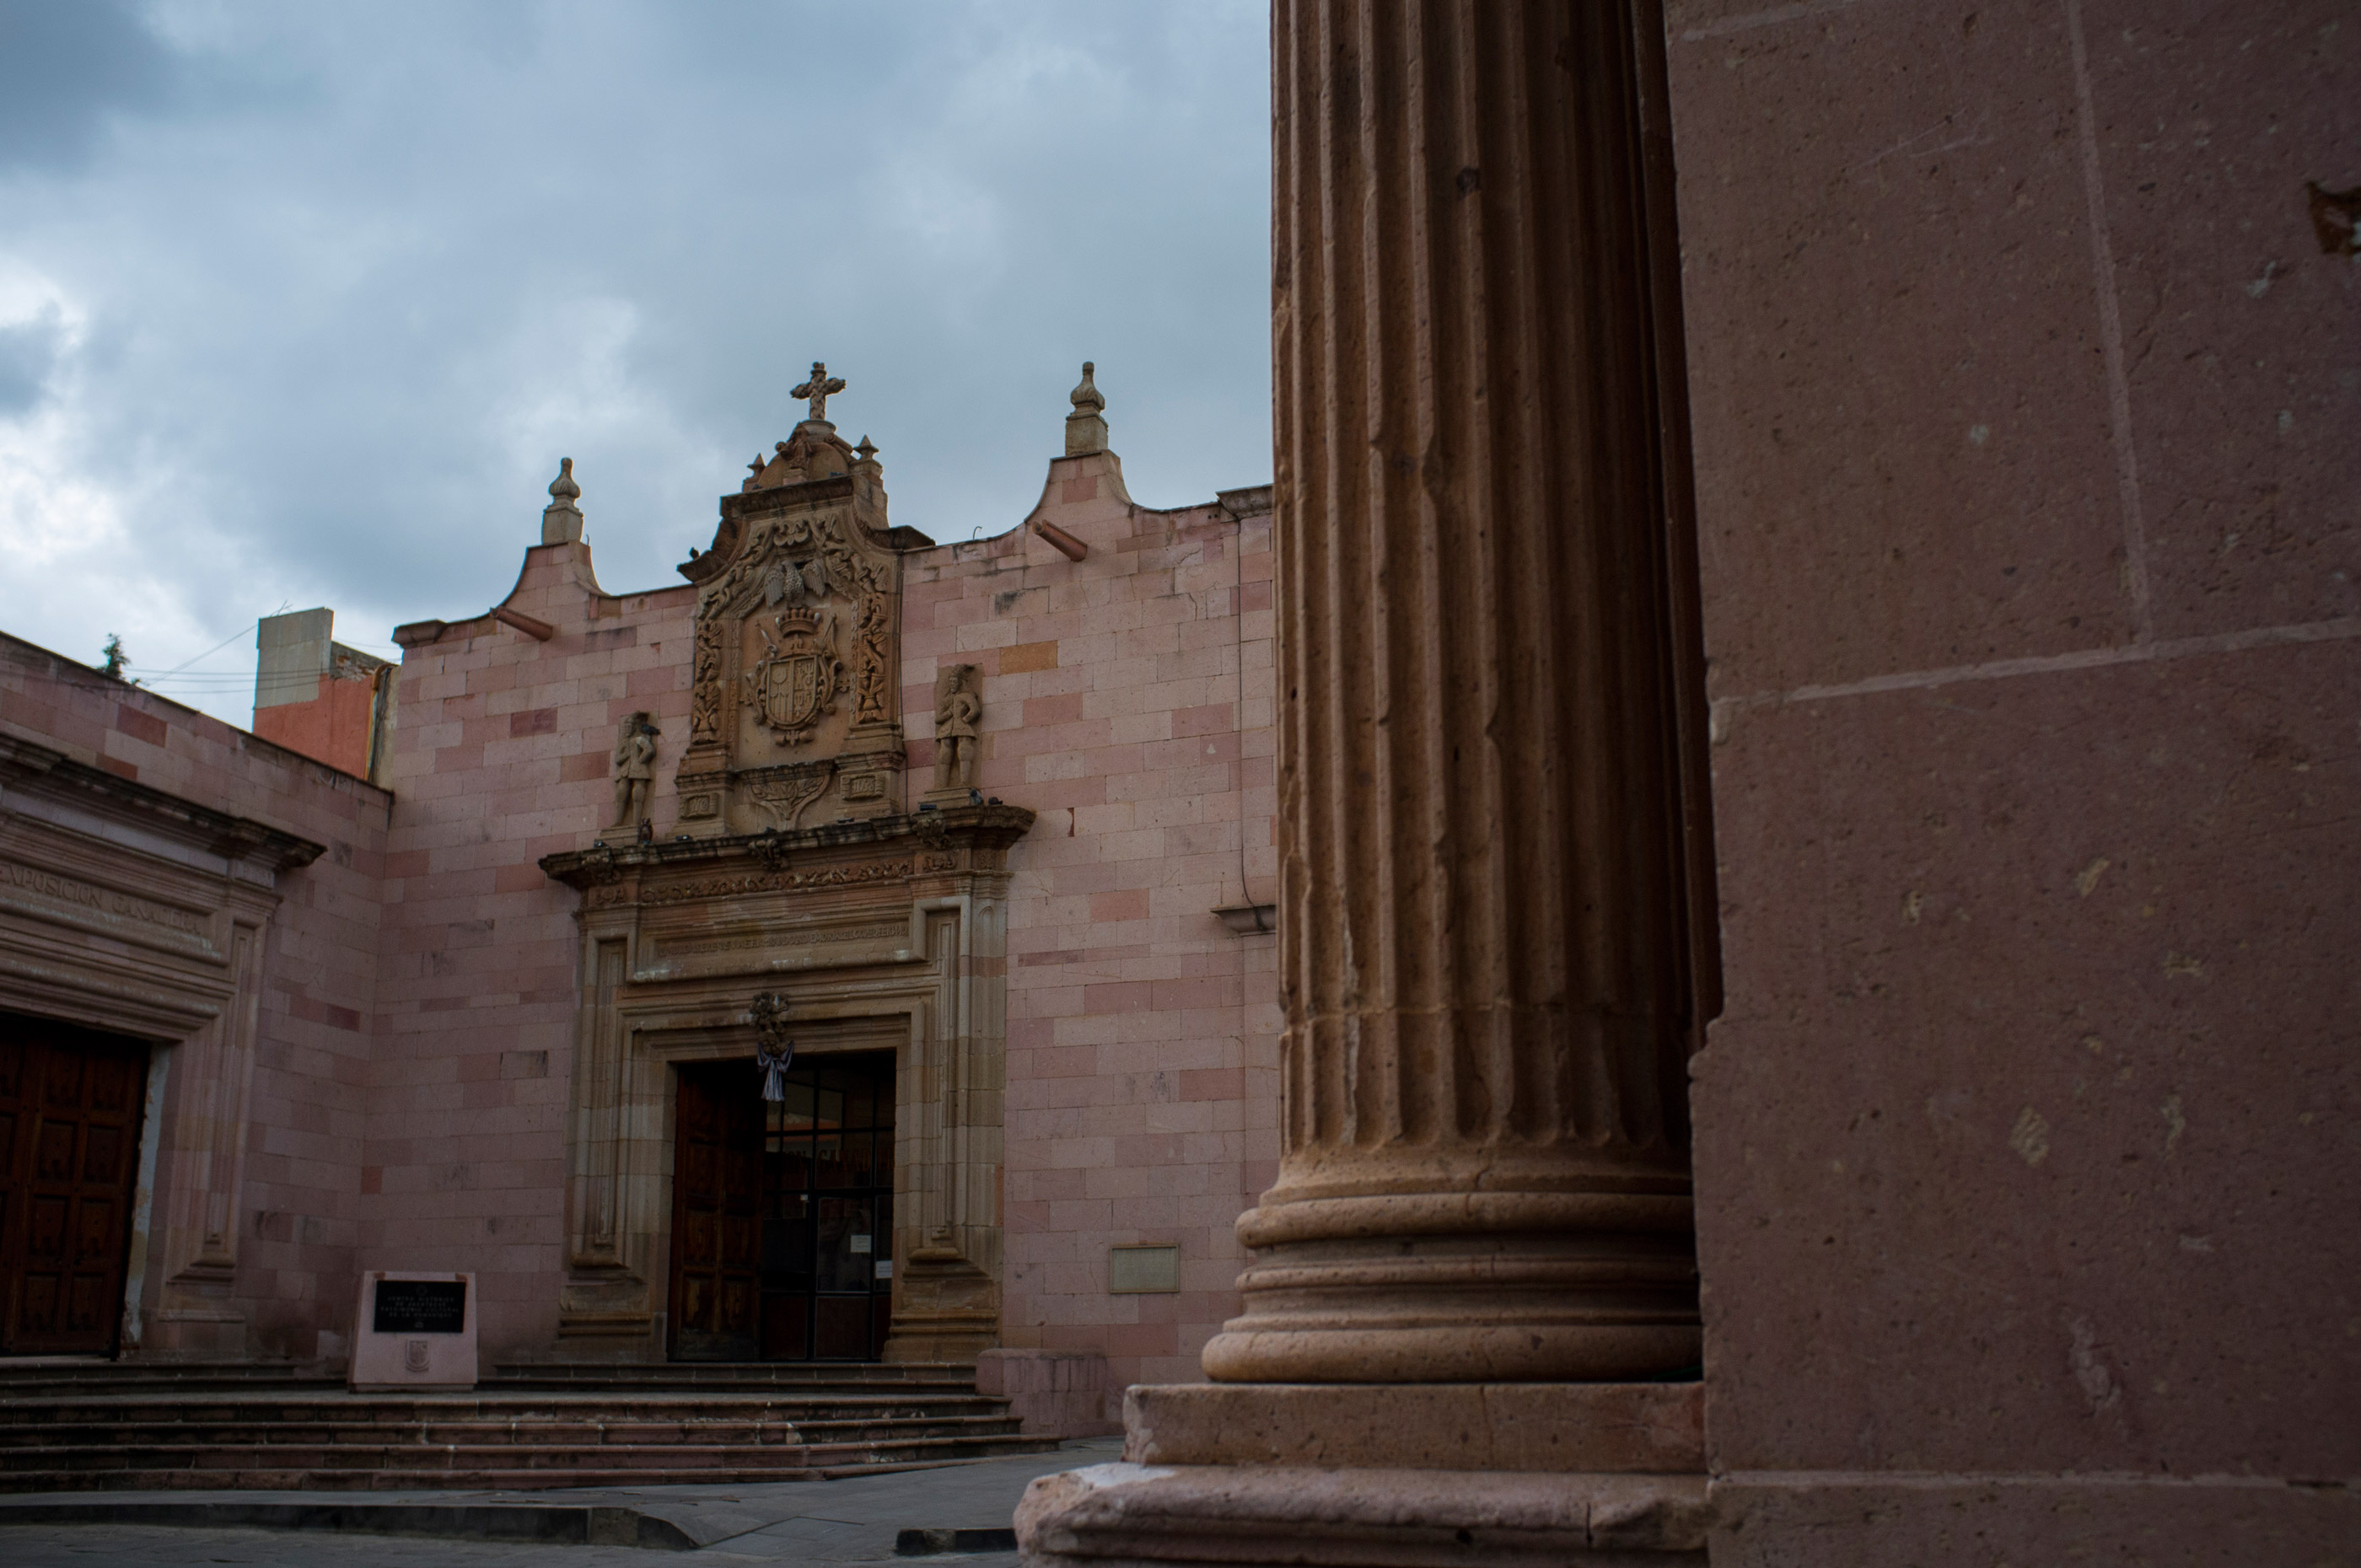 A pink stone building in Zacatecas